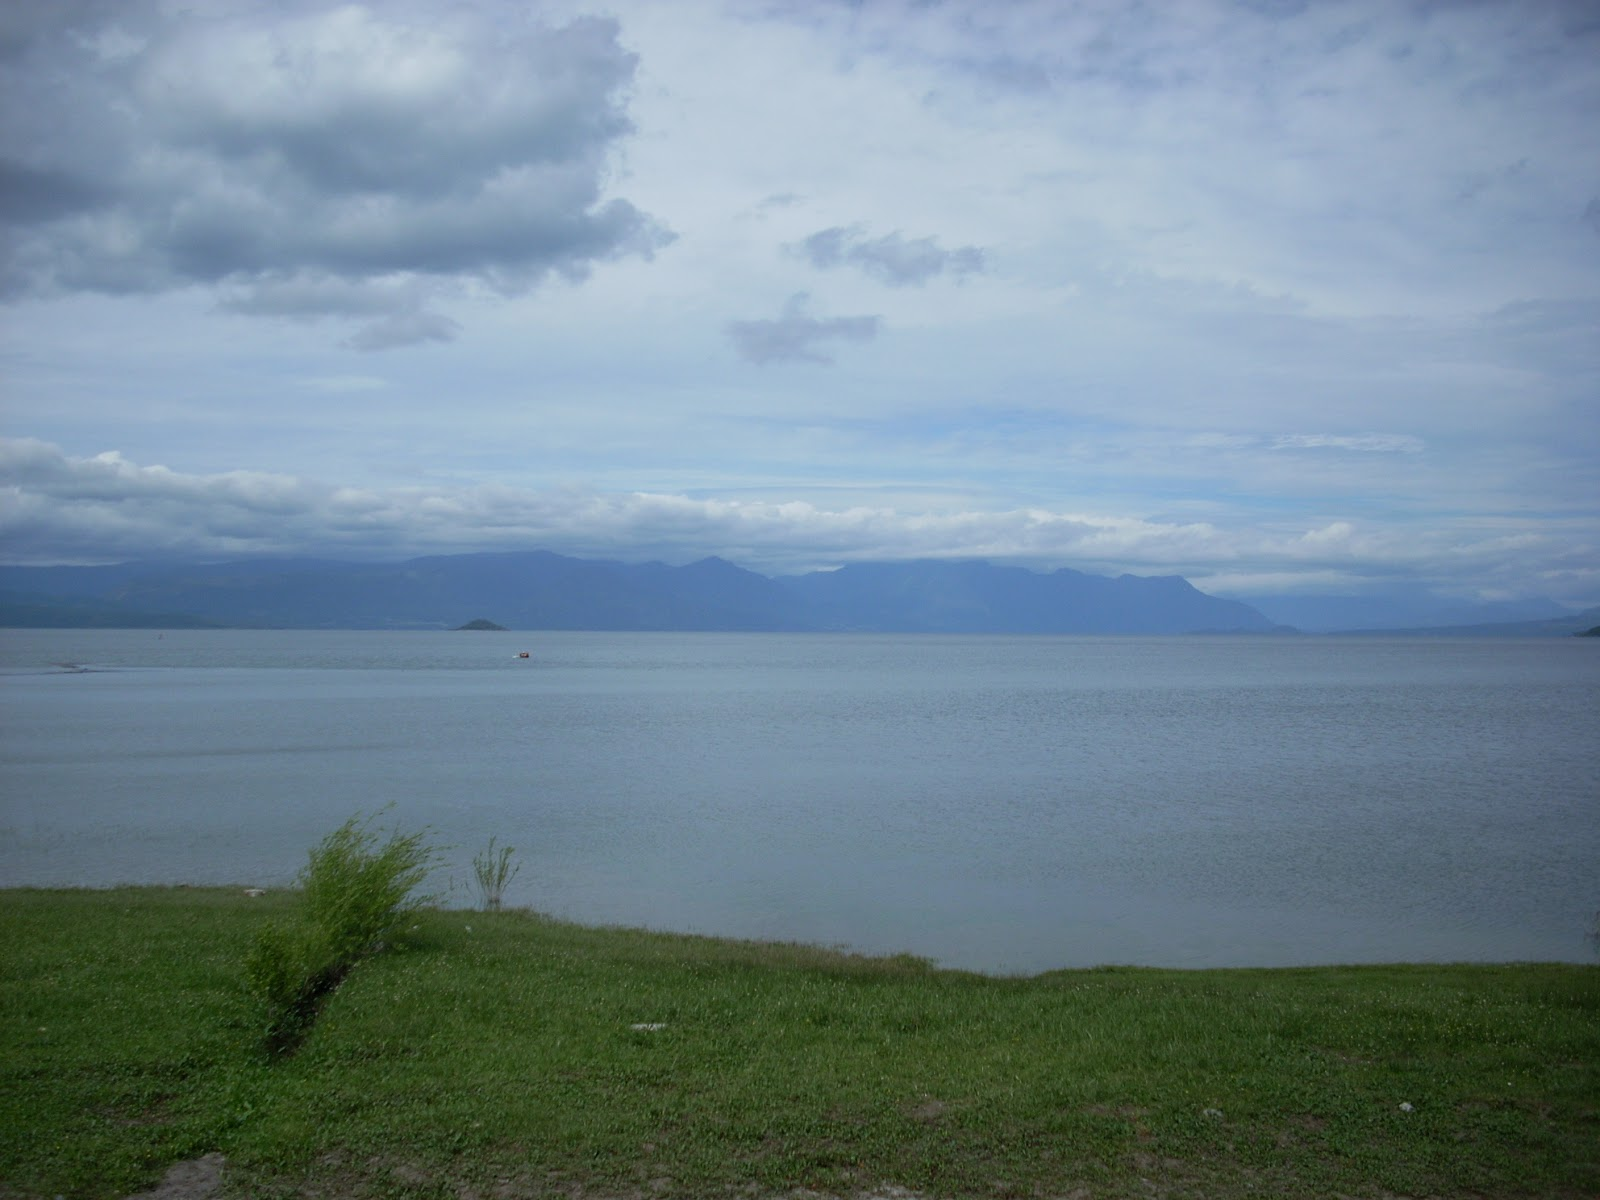 Lago Villaricca. The scenery around here reminds me of the South Island of NZ.